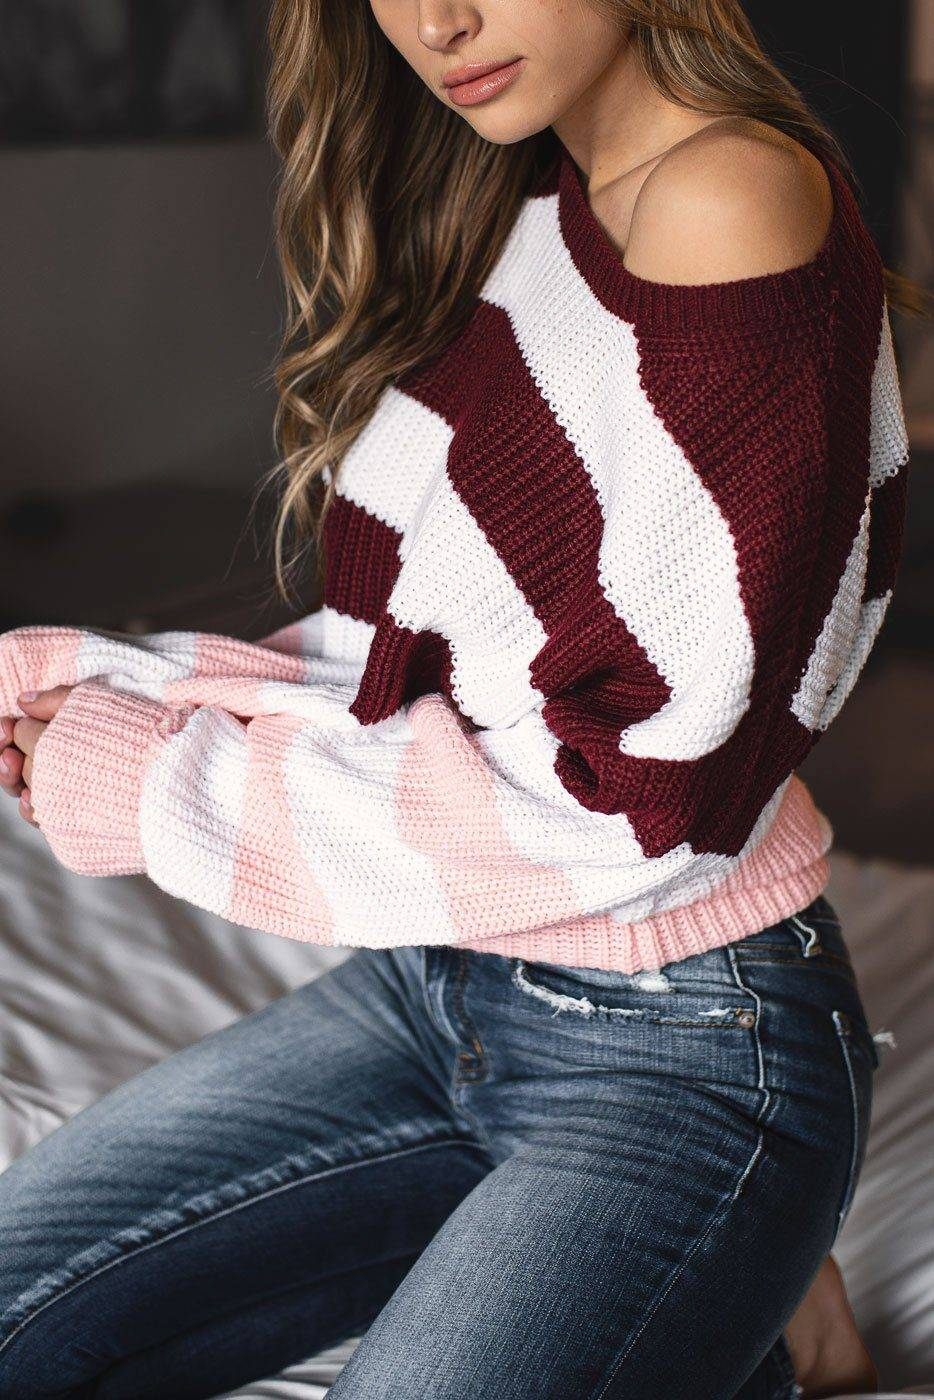 Lily Clothing Lola Burgundy and Pink Striped Sweater  - G1493 Pink Medium